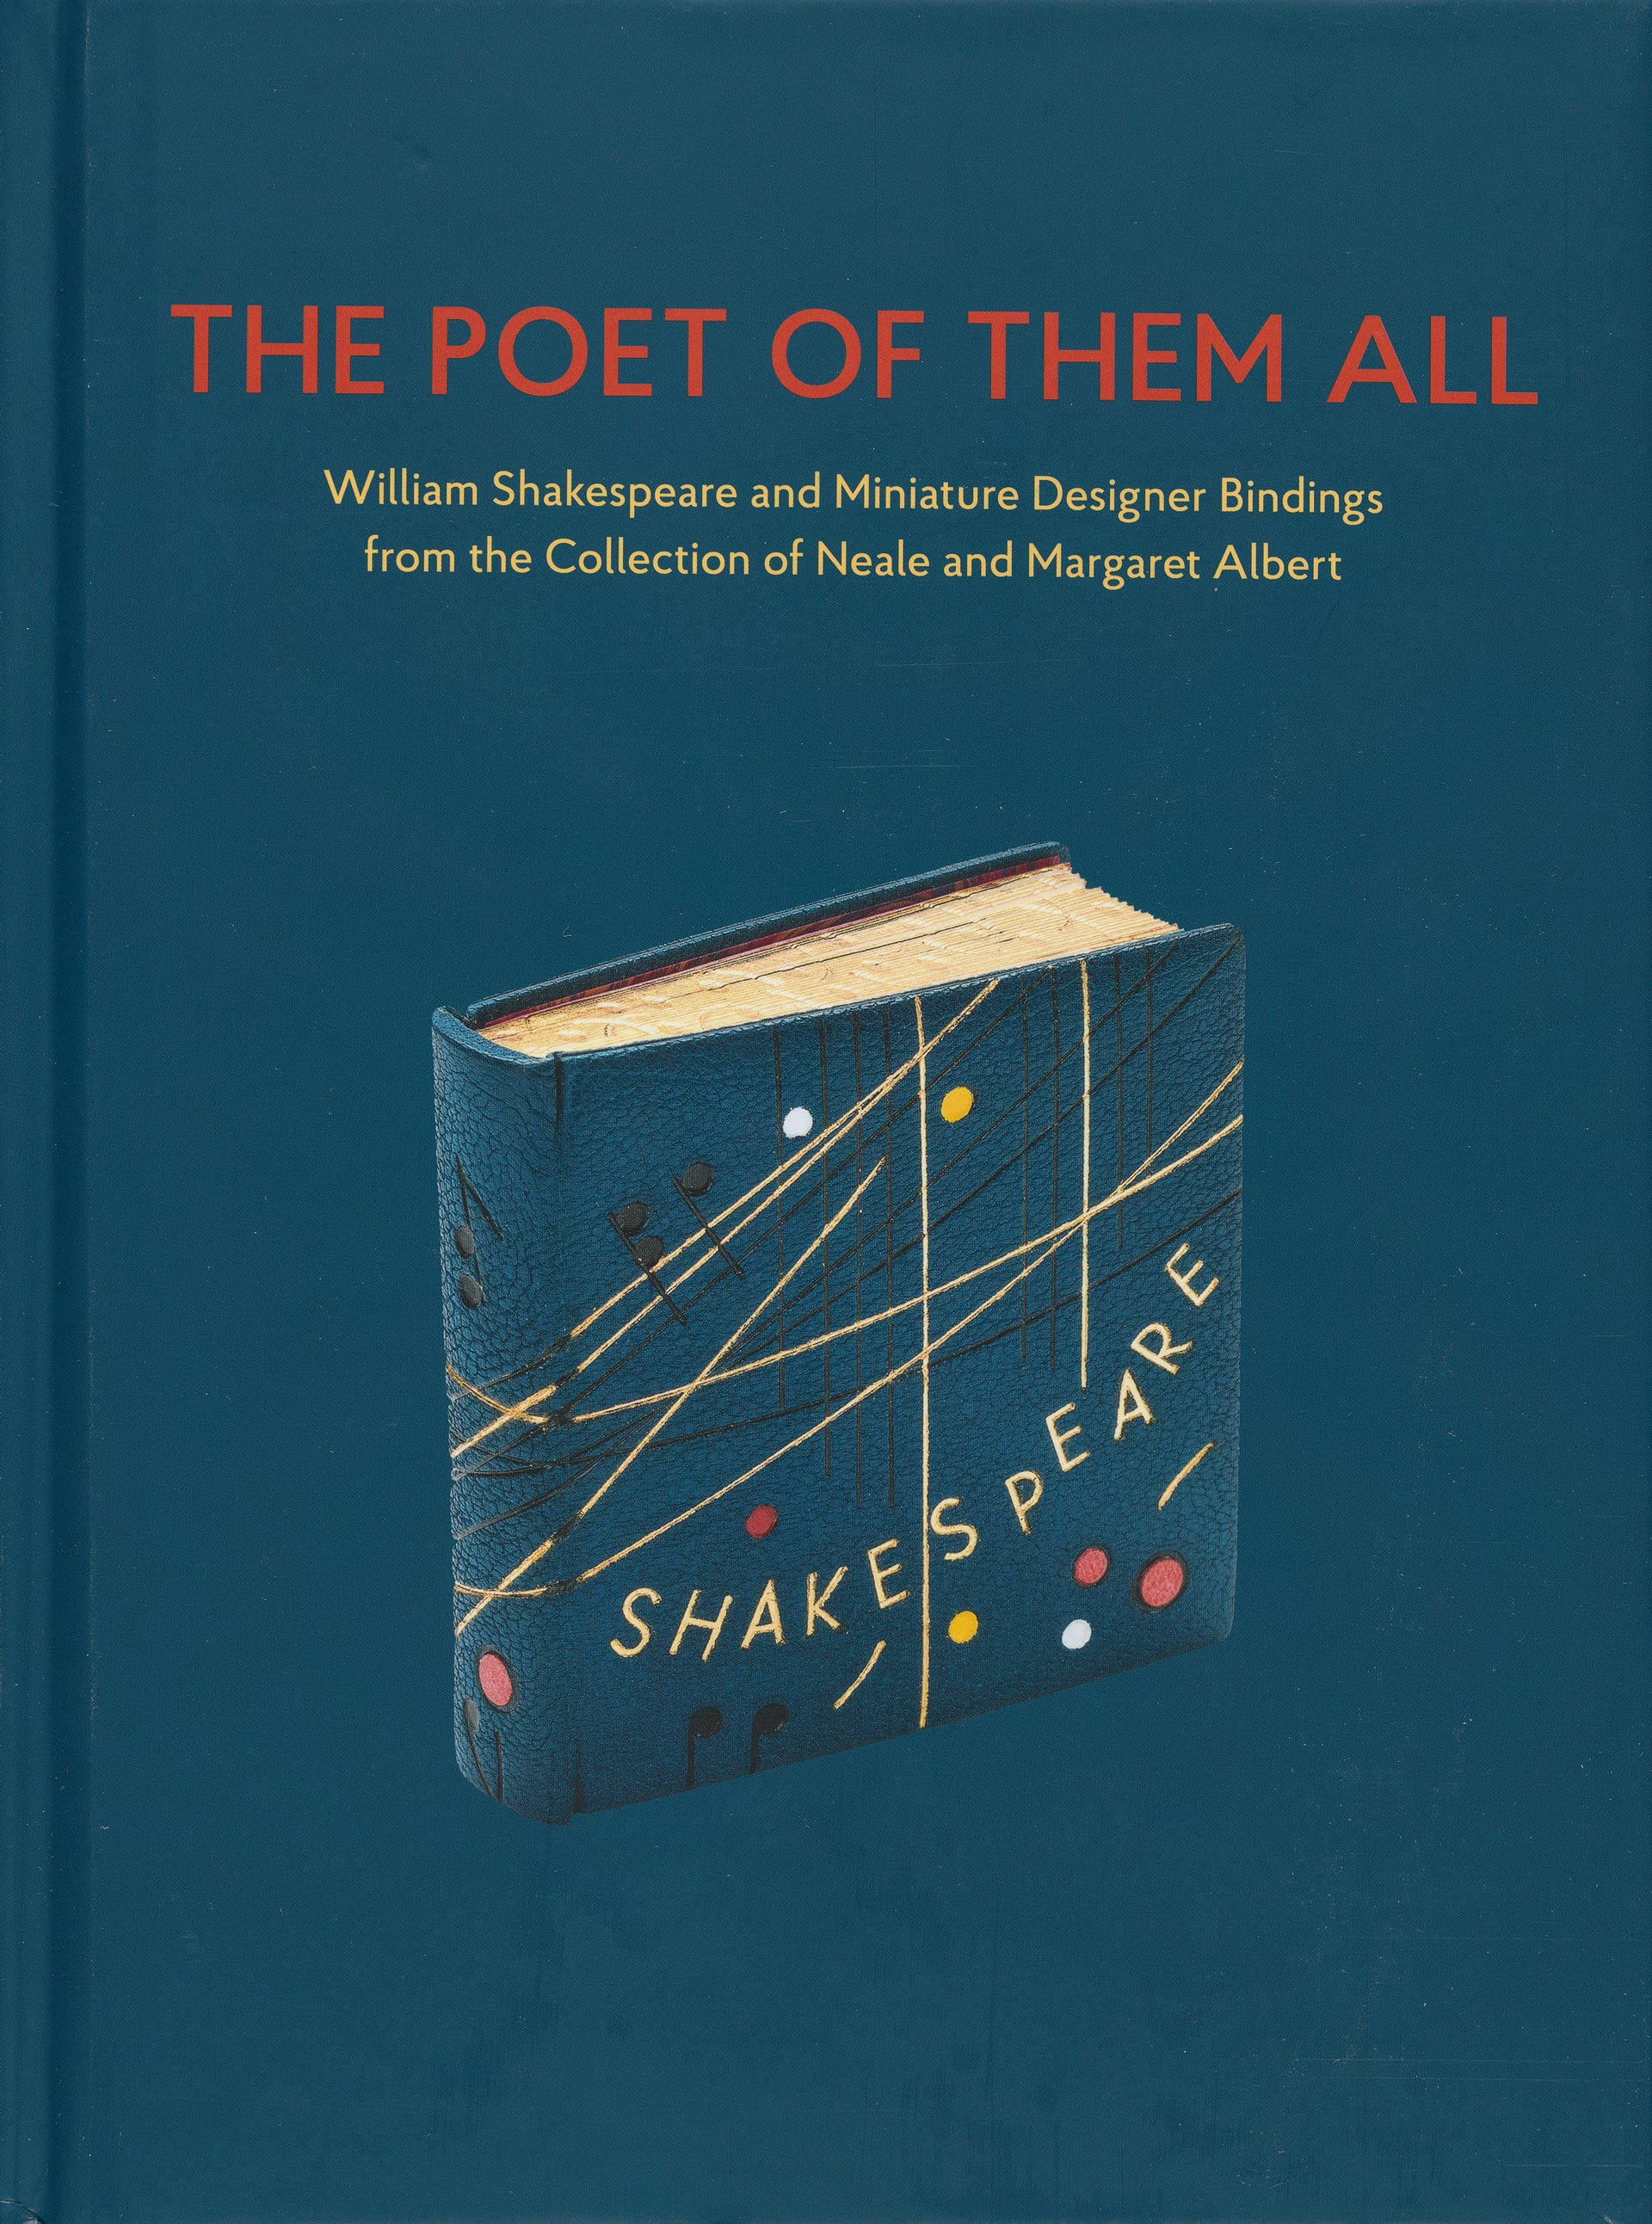 """""""The Poet of Them All"""": William Shakespeare and Miniature Designer Bindings from the Collection of Neale and Margaret Albert"""